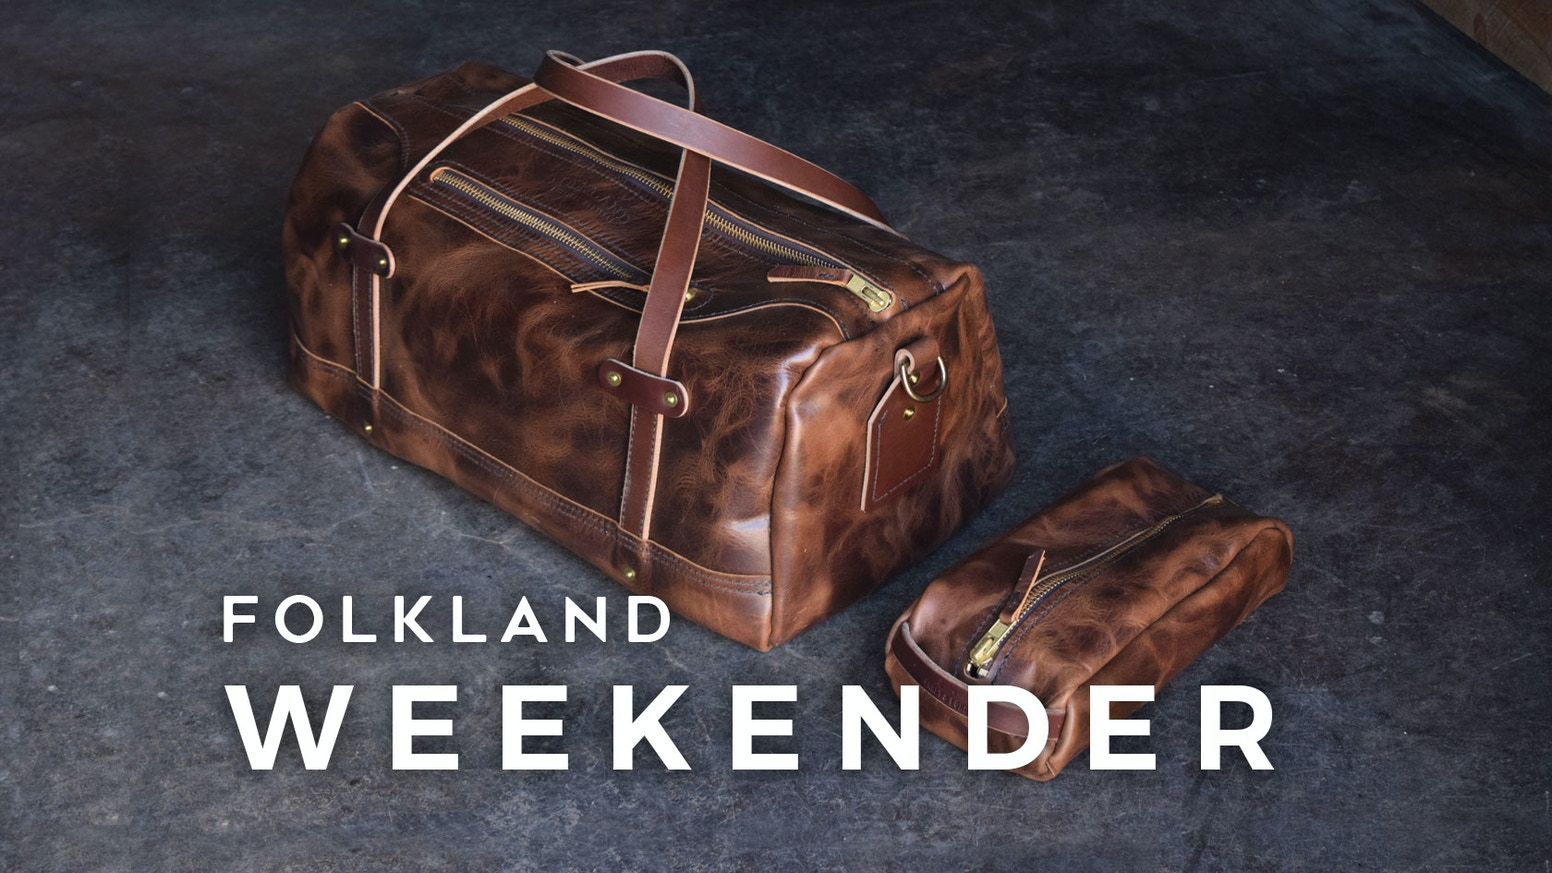 The Folkland Weekender Duffel is simple in form & function, and built by us in the PNW USA with classic & durable canvas and leather.